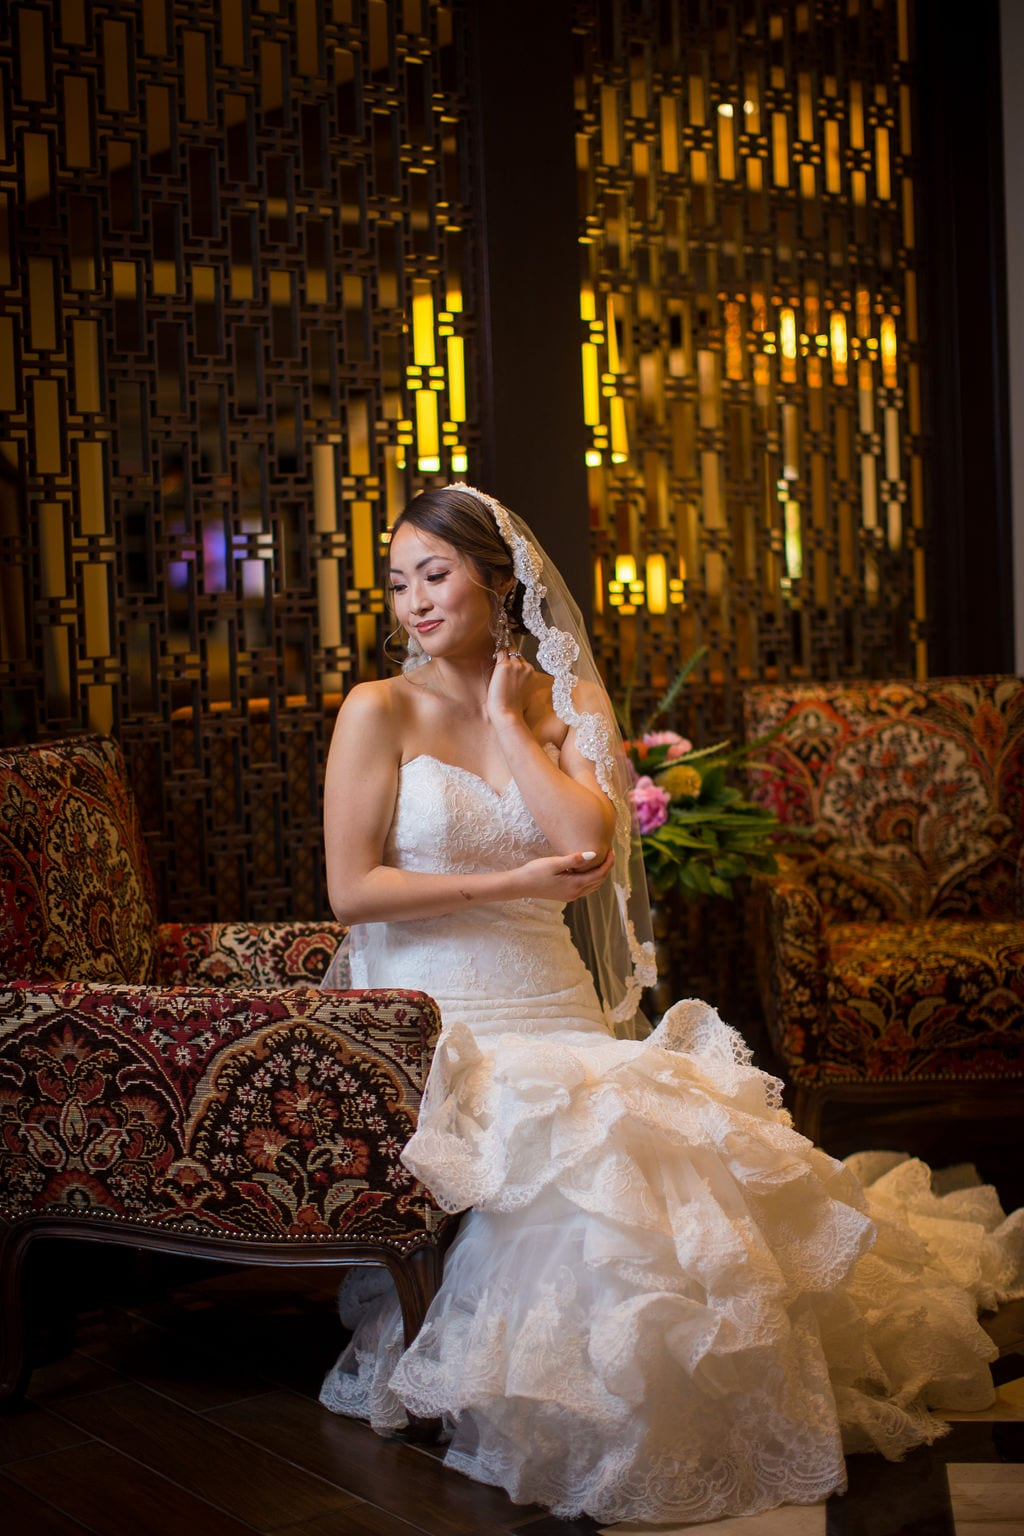 Marriott Plaza Styled shoot bride in lobby siting